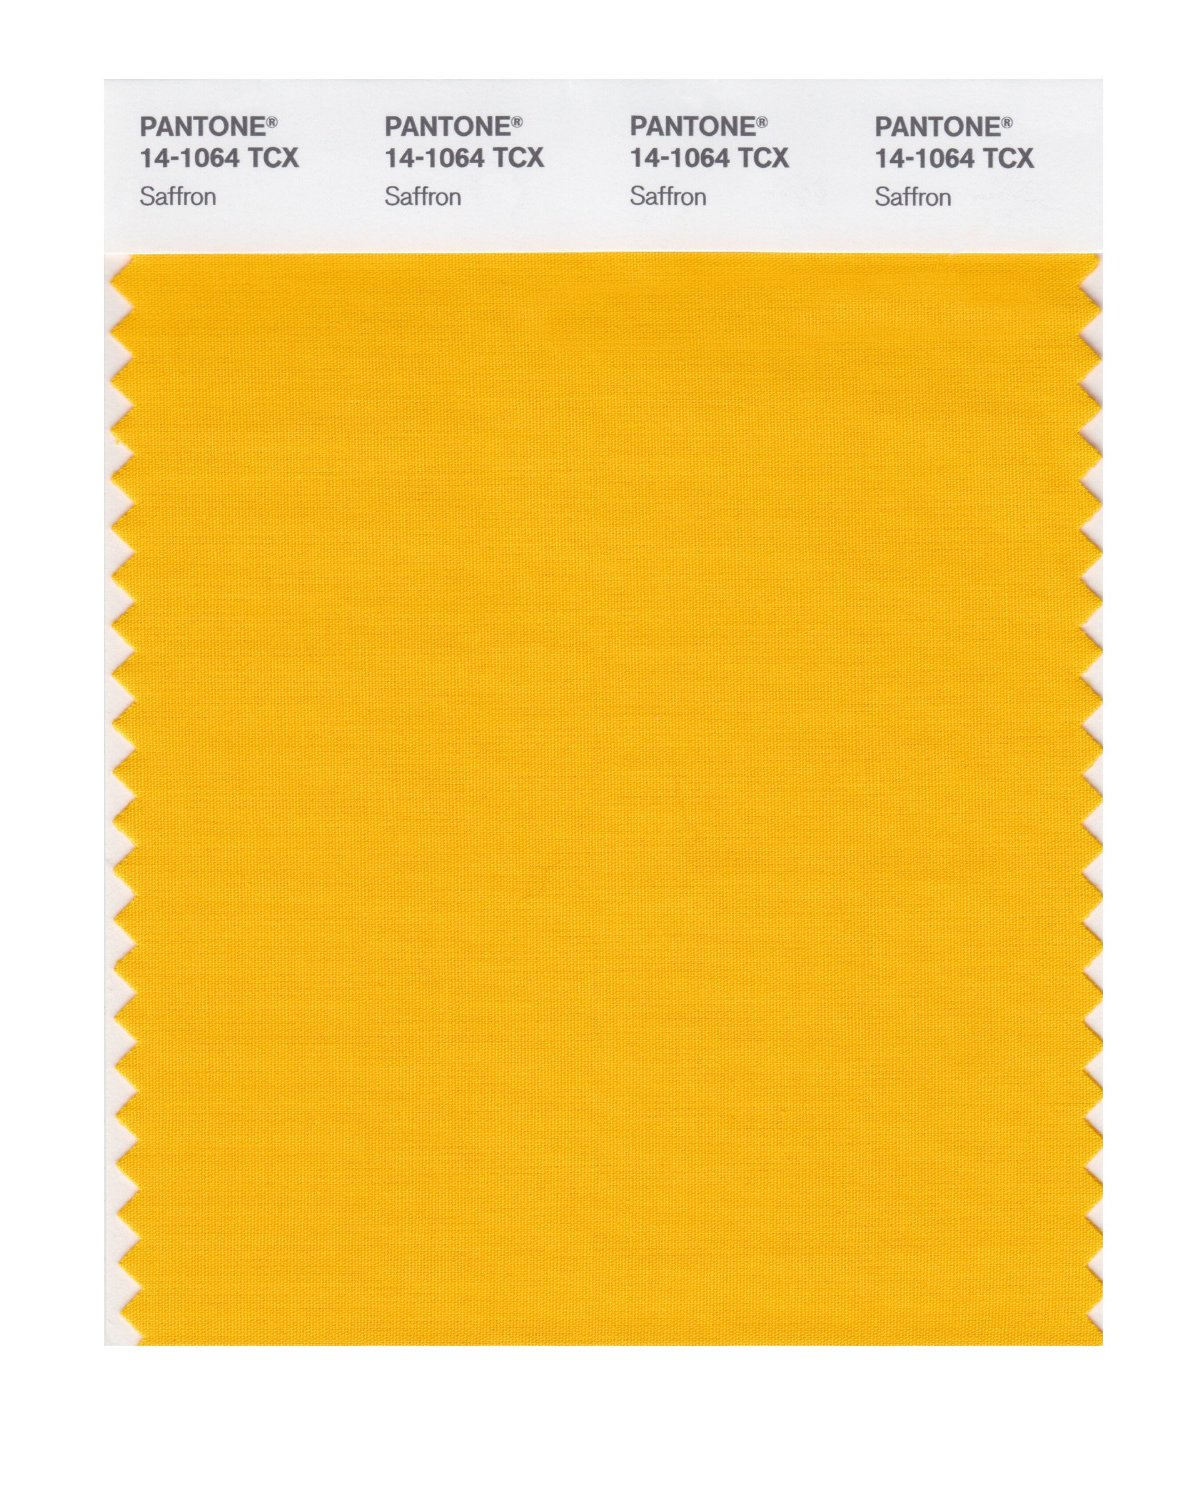 Pantone Smart Swatch 14-1064 Saffron